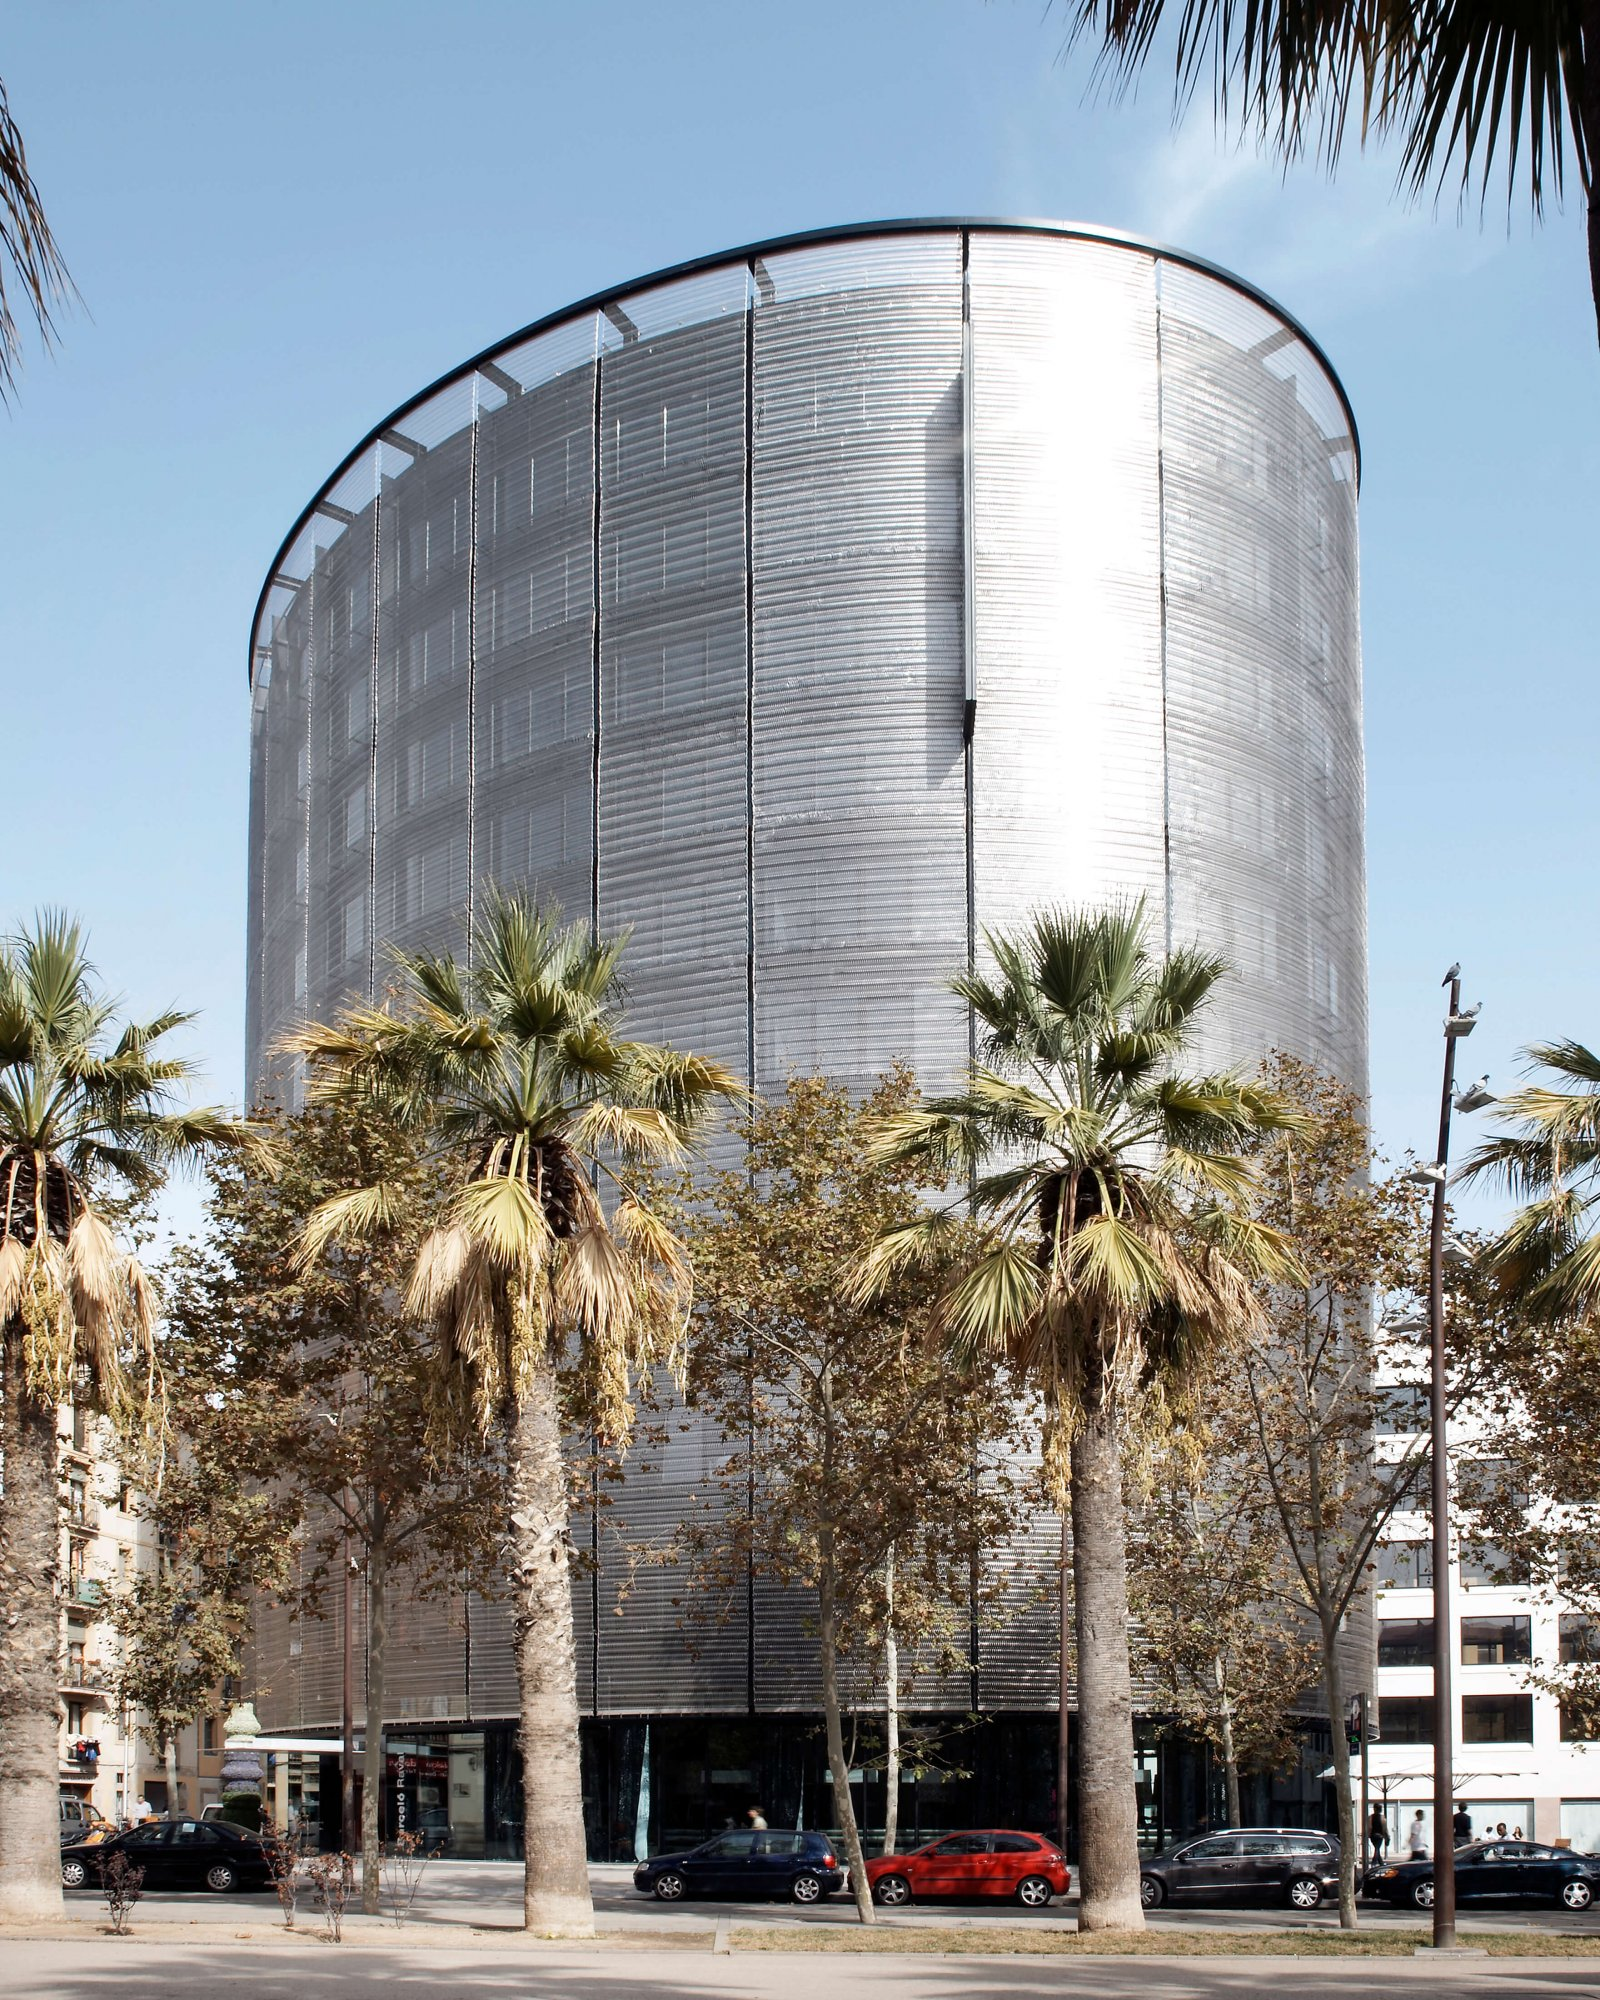 Another exterior view of the oval hotel raval tower with palm trees during the day